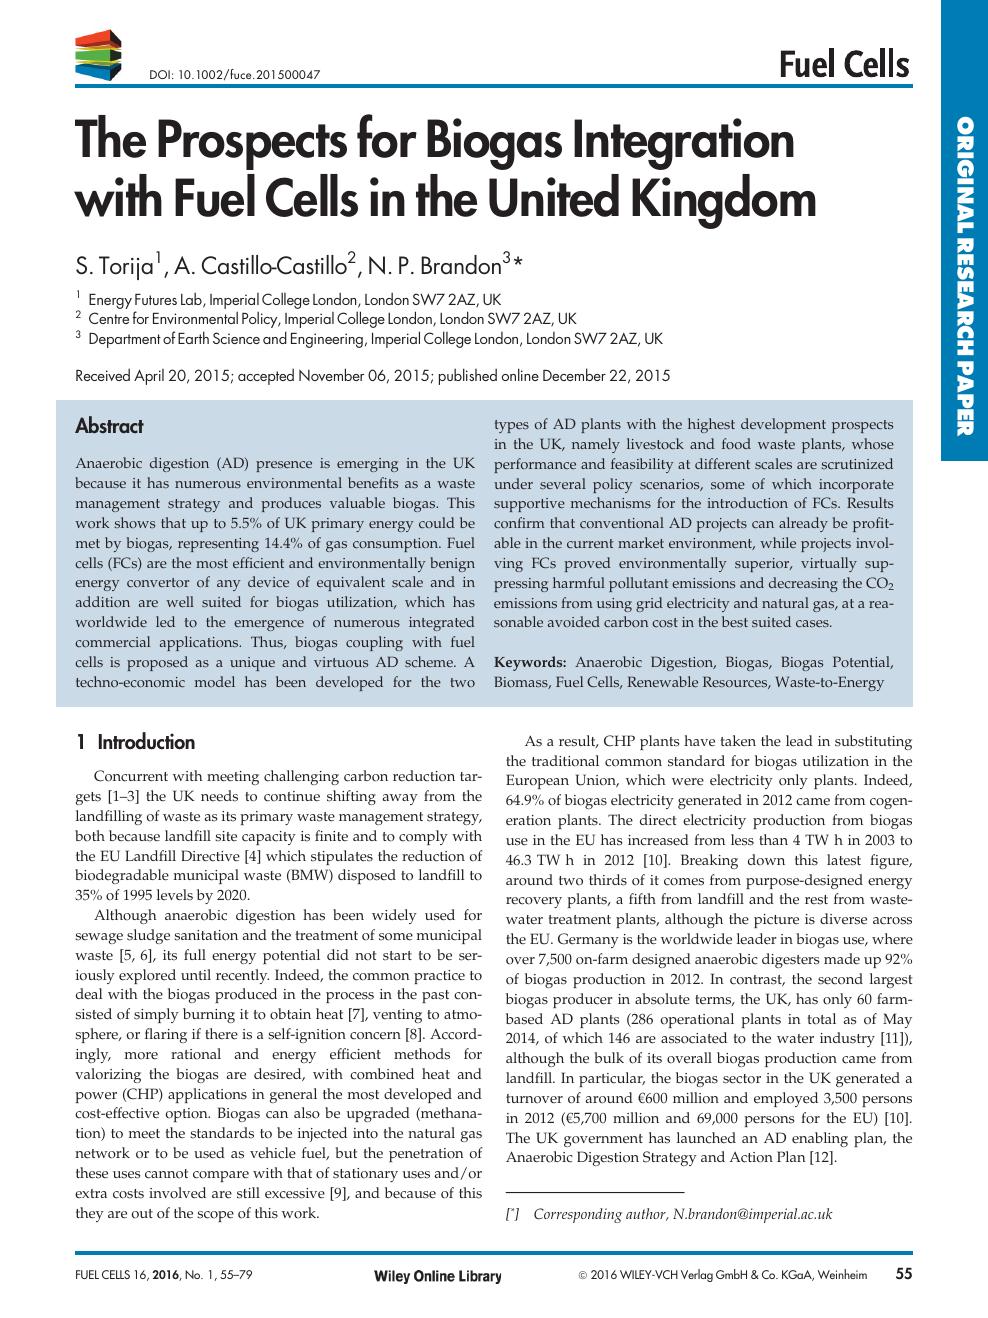 The Prospects for Biogas Integration with Fuel Cells in the